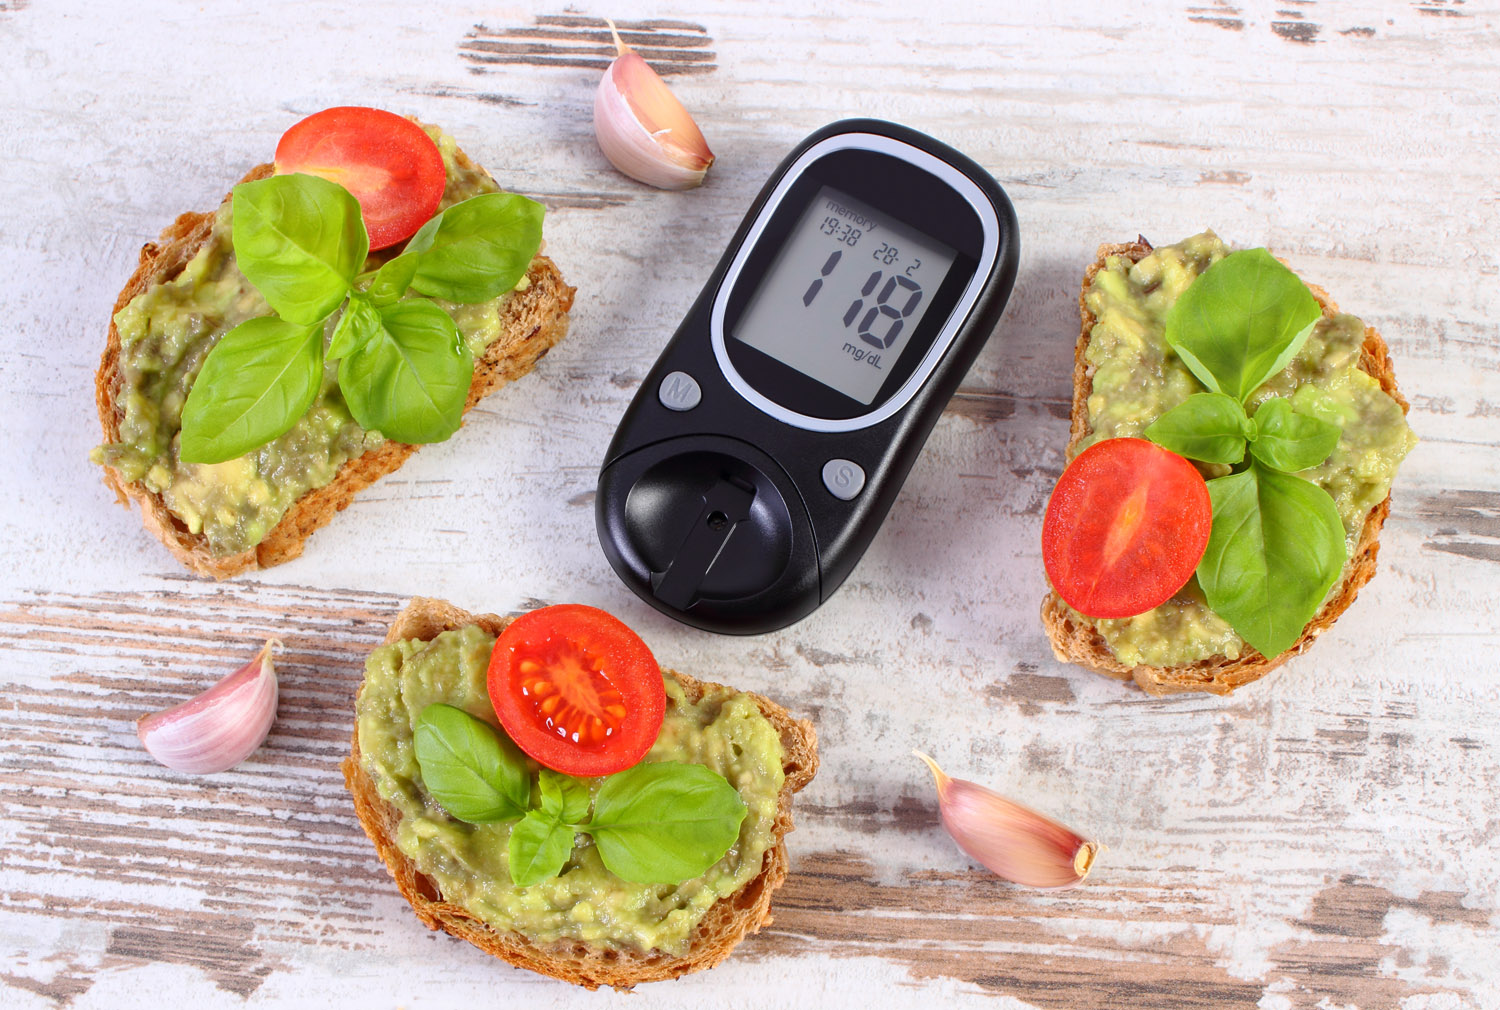 Glucose meter with result of measurement sugar level and freshly sandwiches with paste of avocado, concept of diabetes, healthy food, nutrition and omega fatty acids